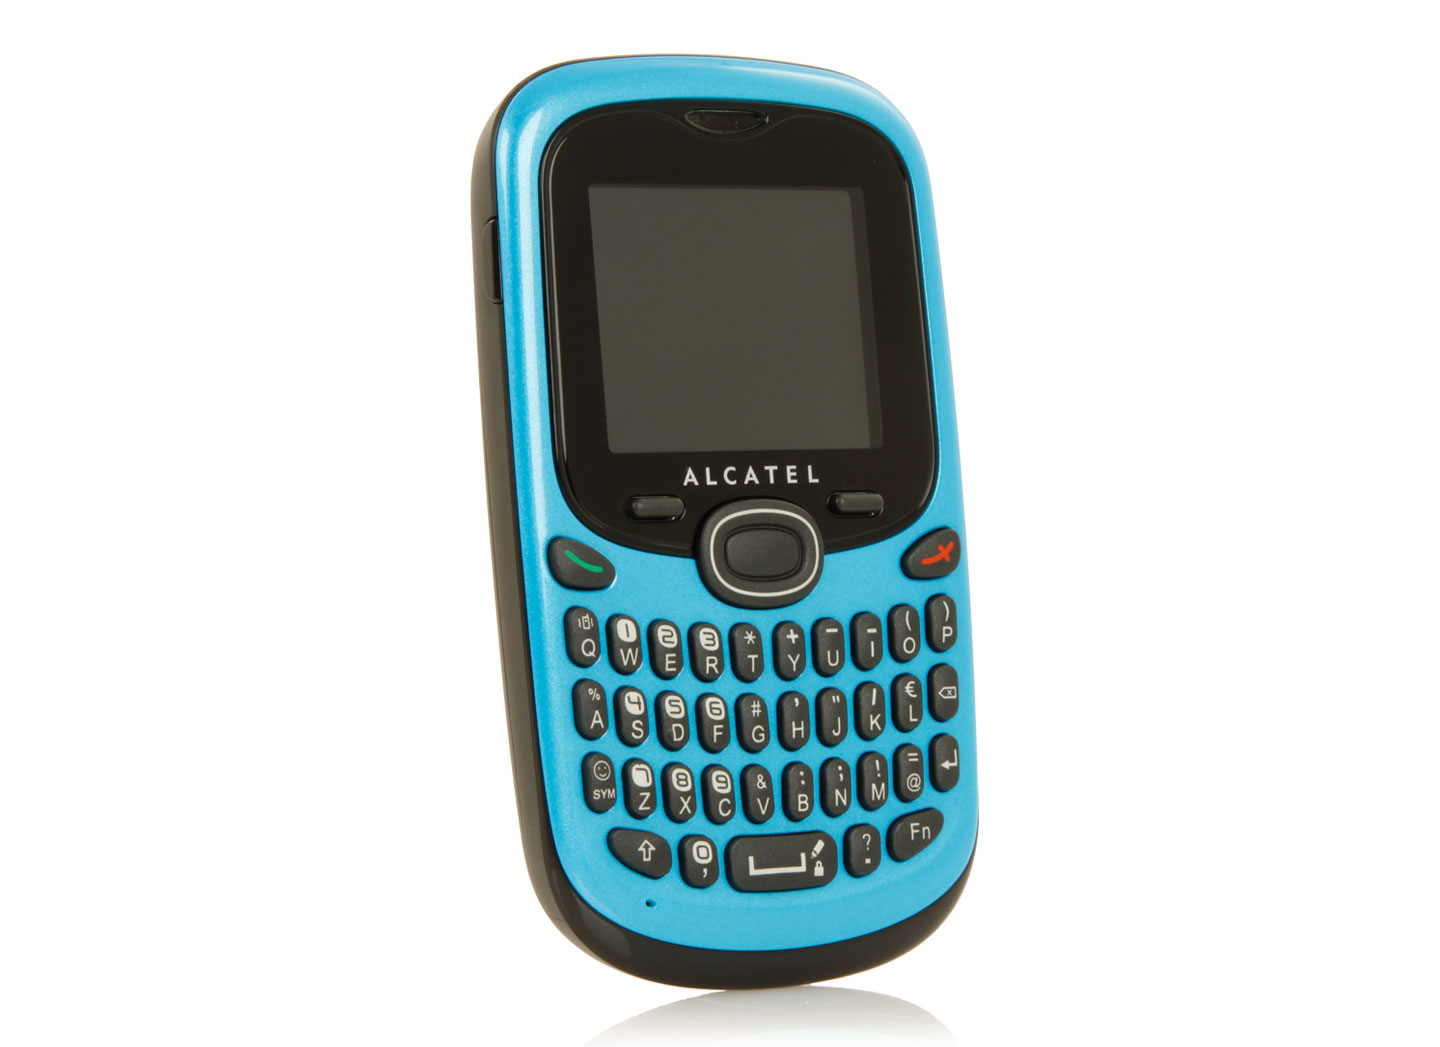 alcatel ot 255 mobile phone 1 8 fresh turquoise unlocked unsealed ebay. Black Bedroom Furniture Sets. Home Design Ideas